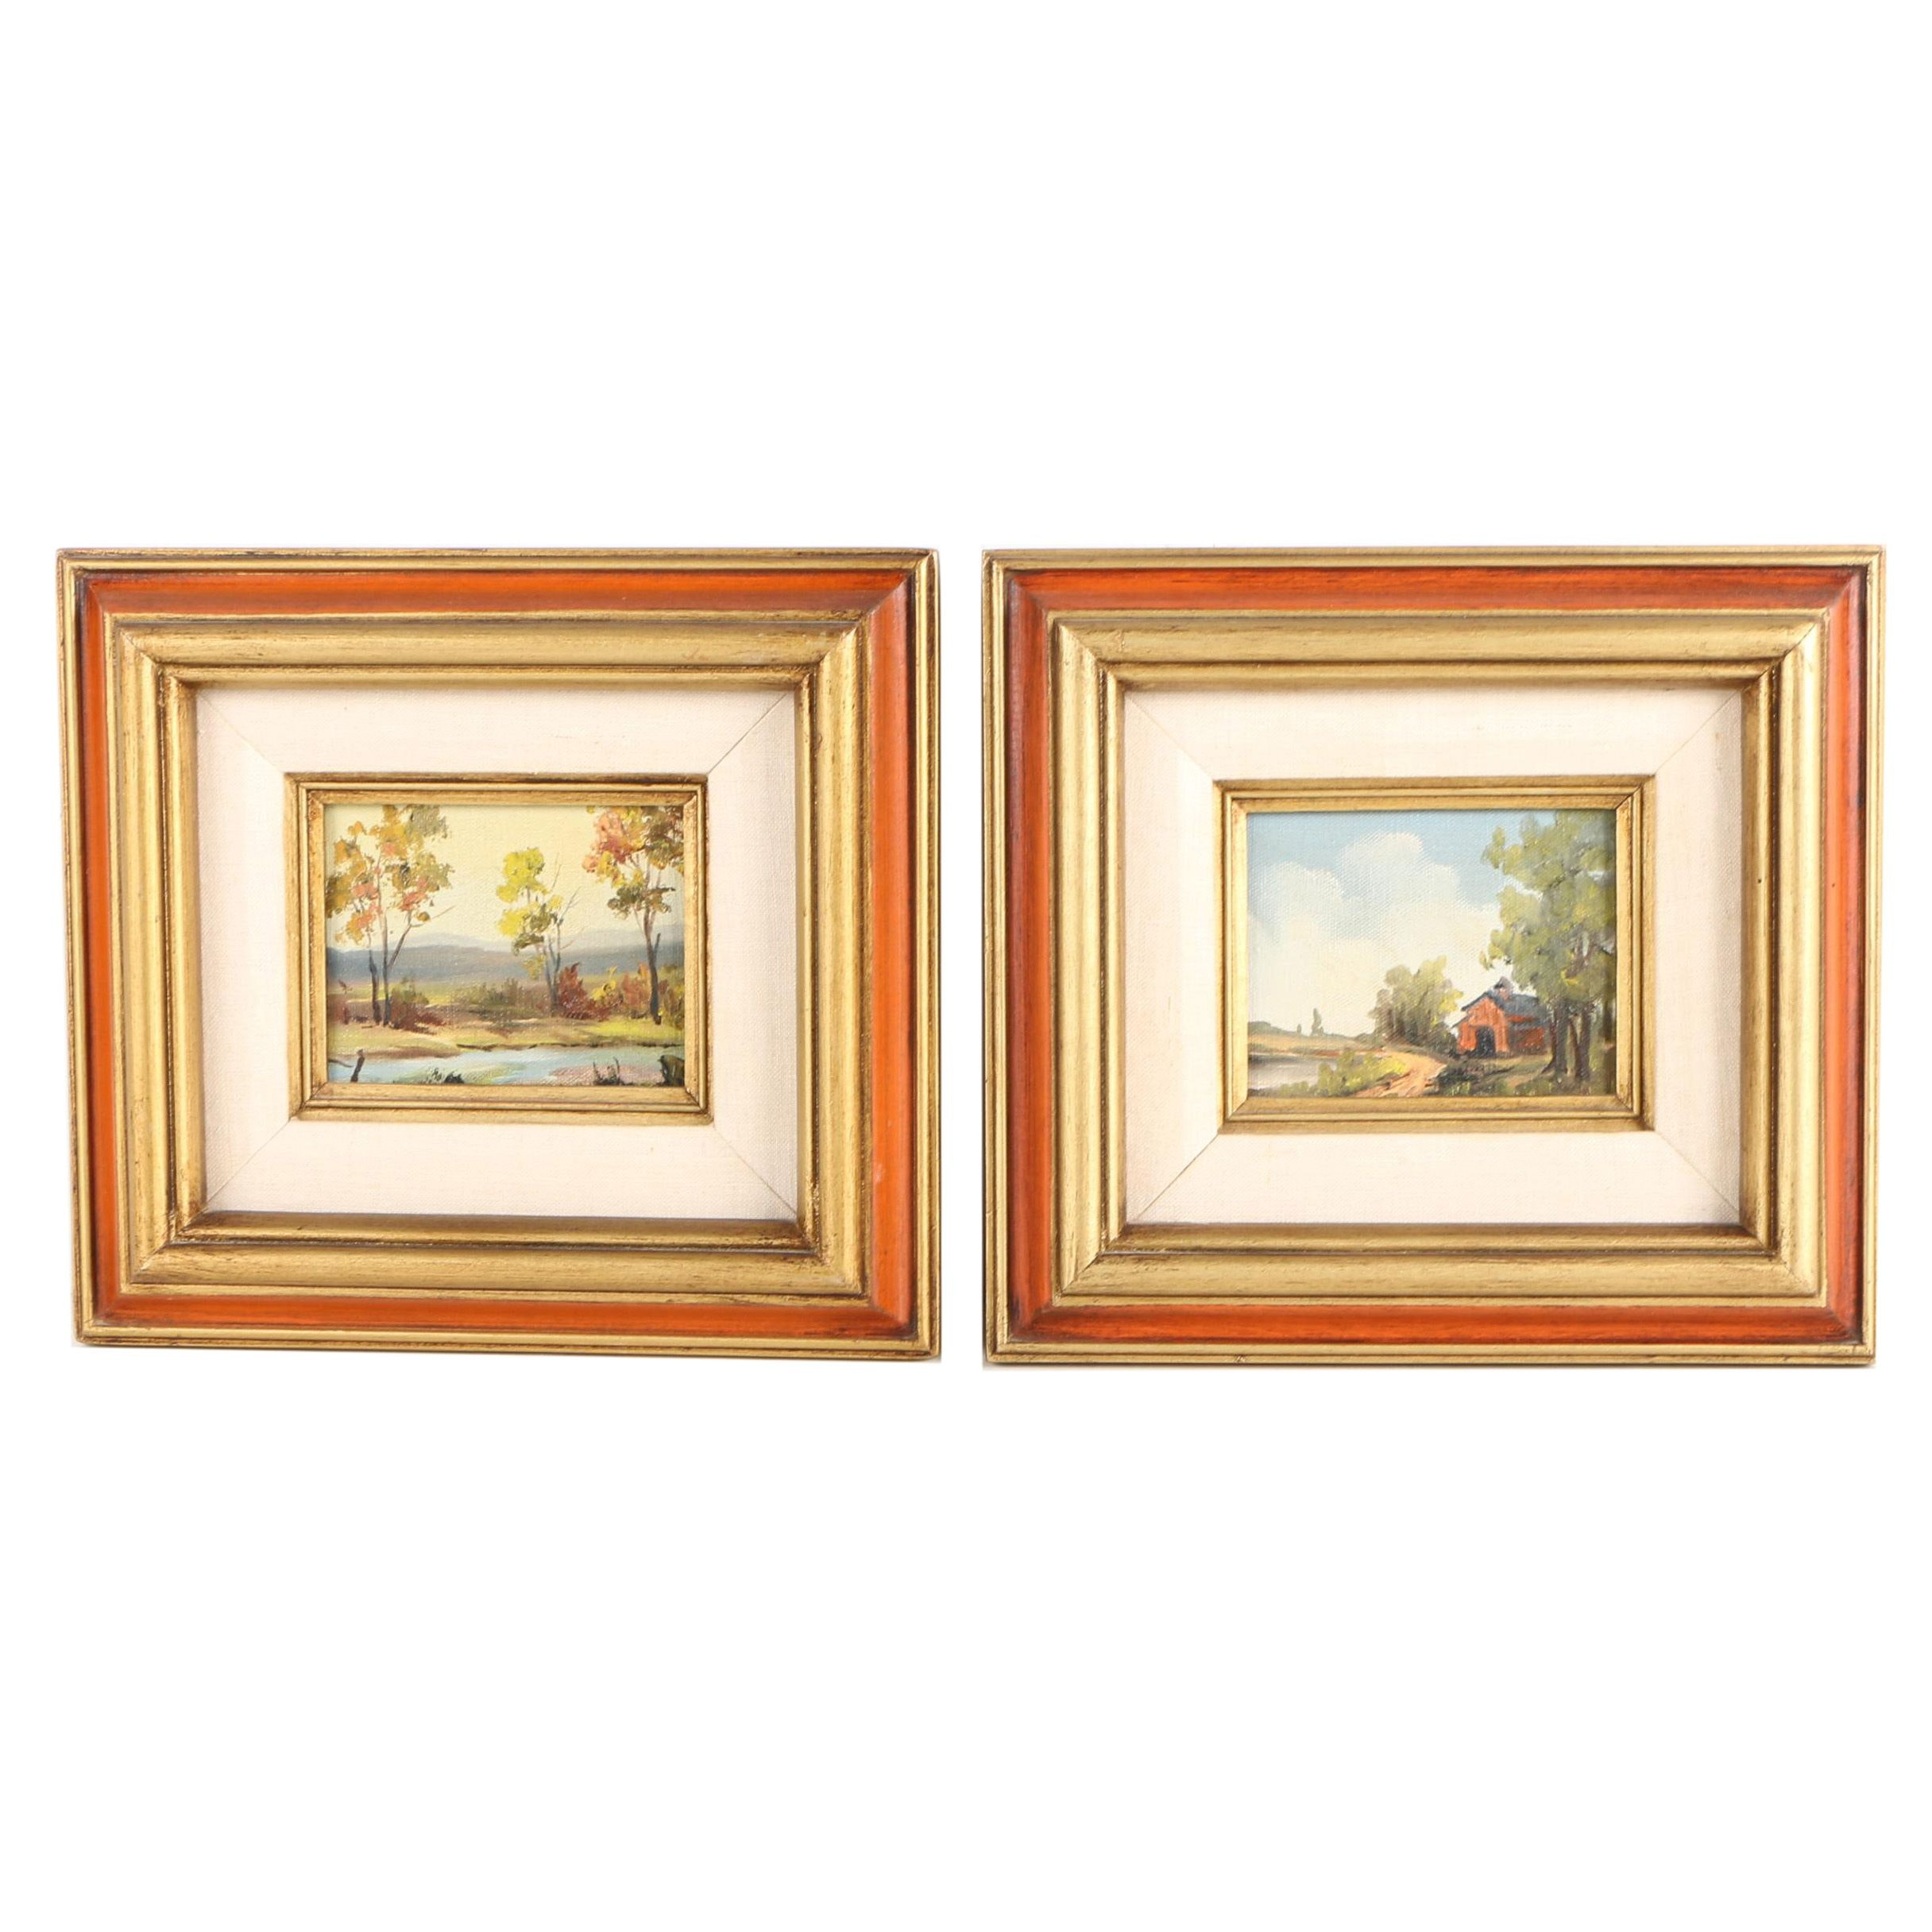 Pair of Oil on Canvas Landscape Paintings